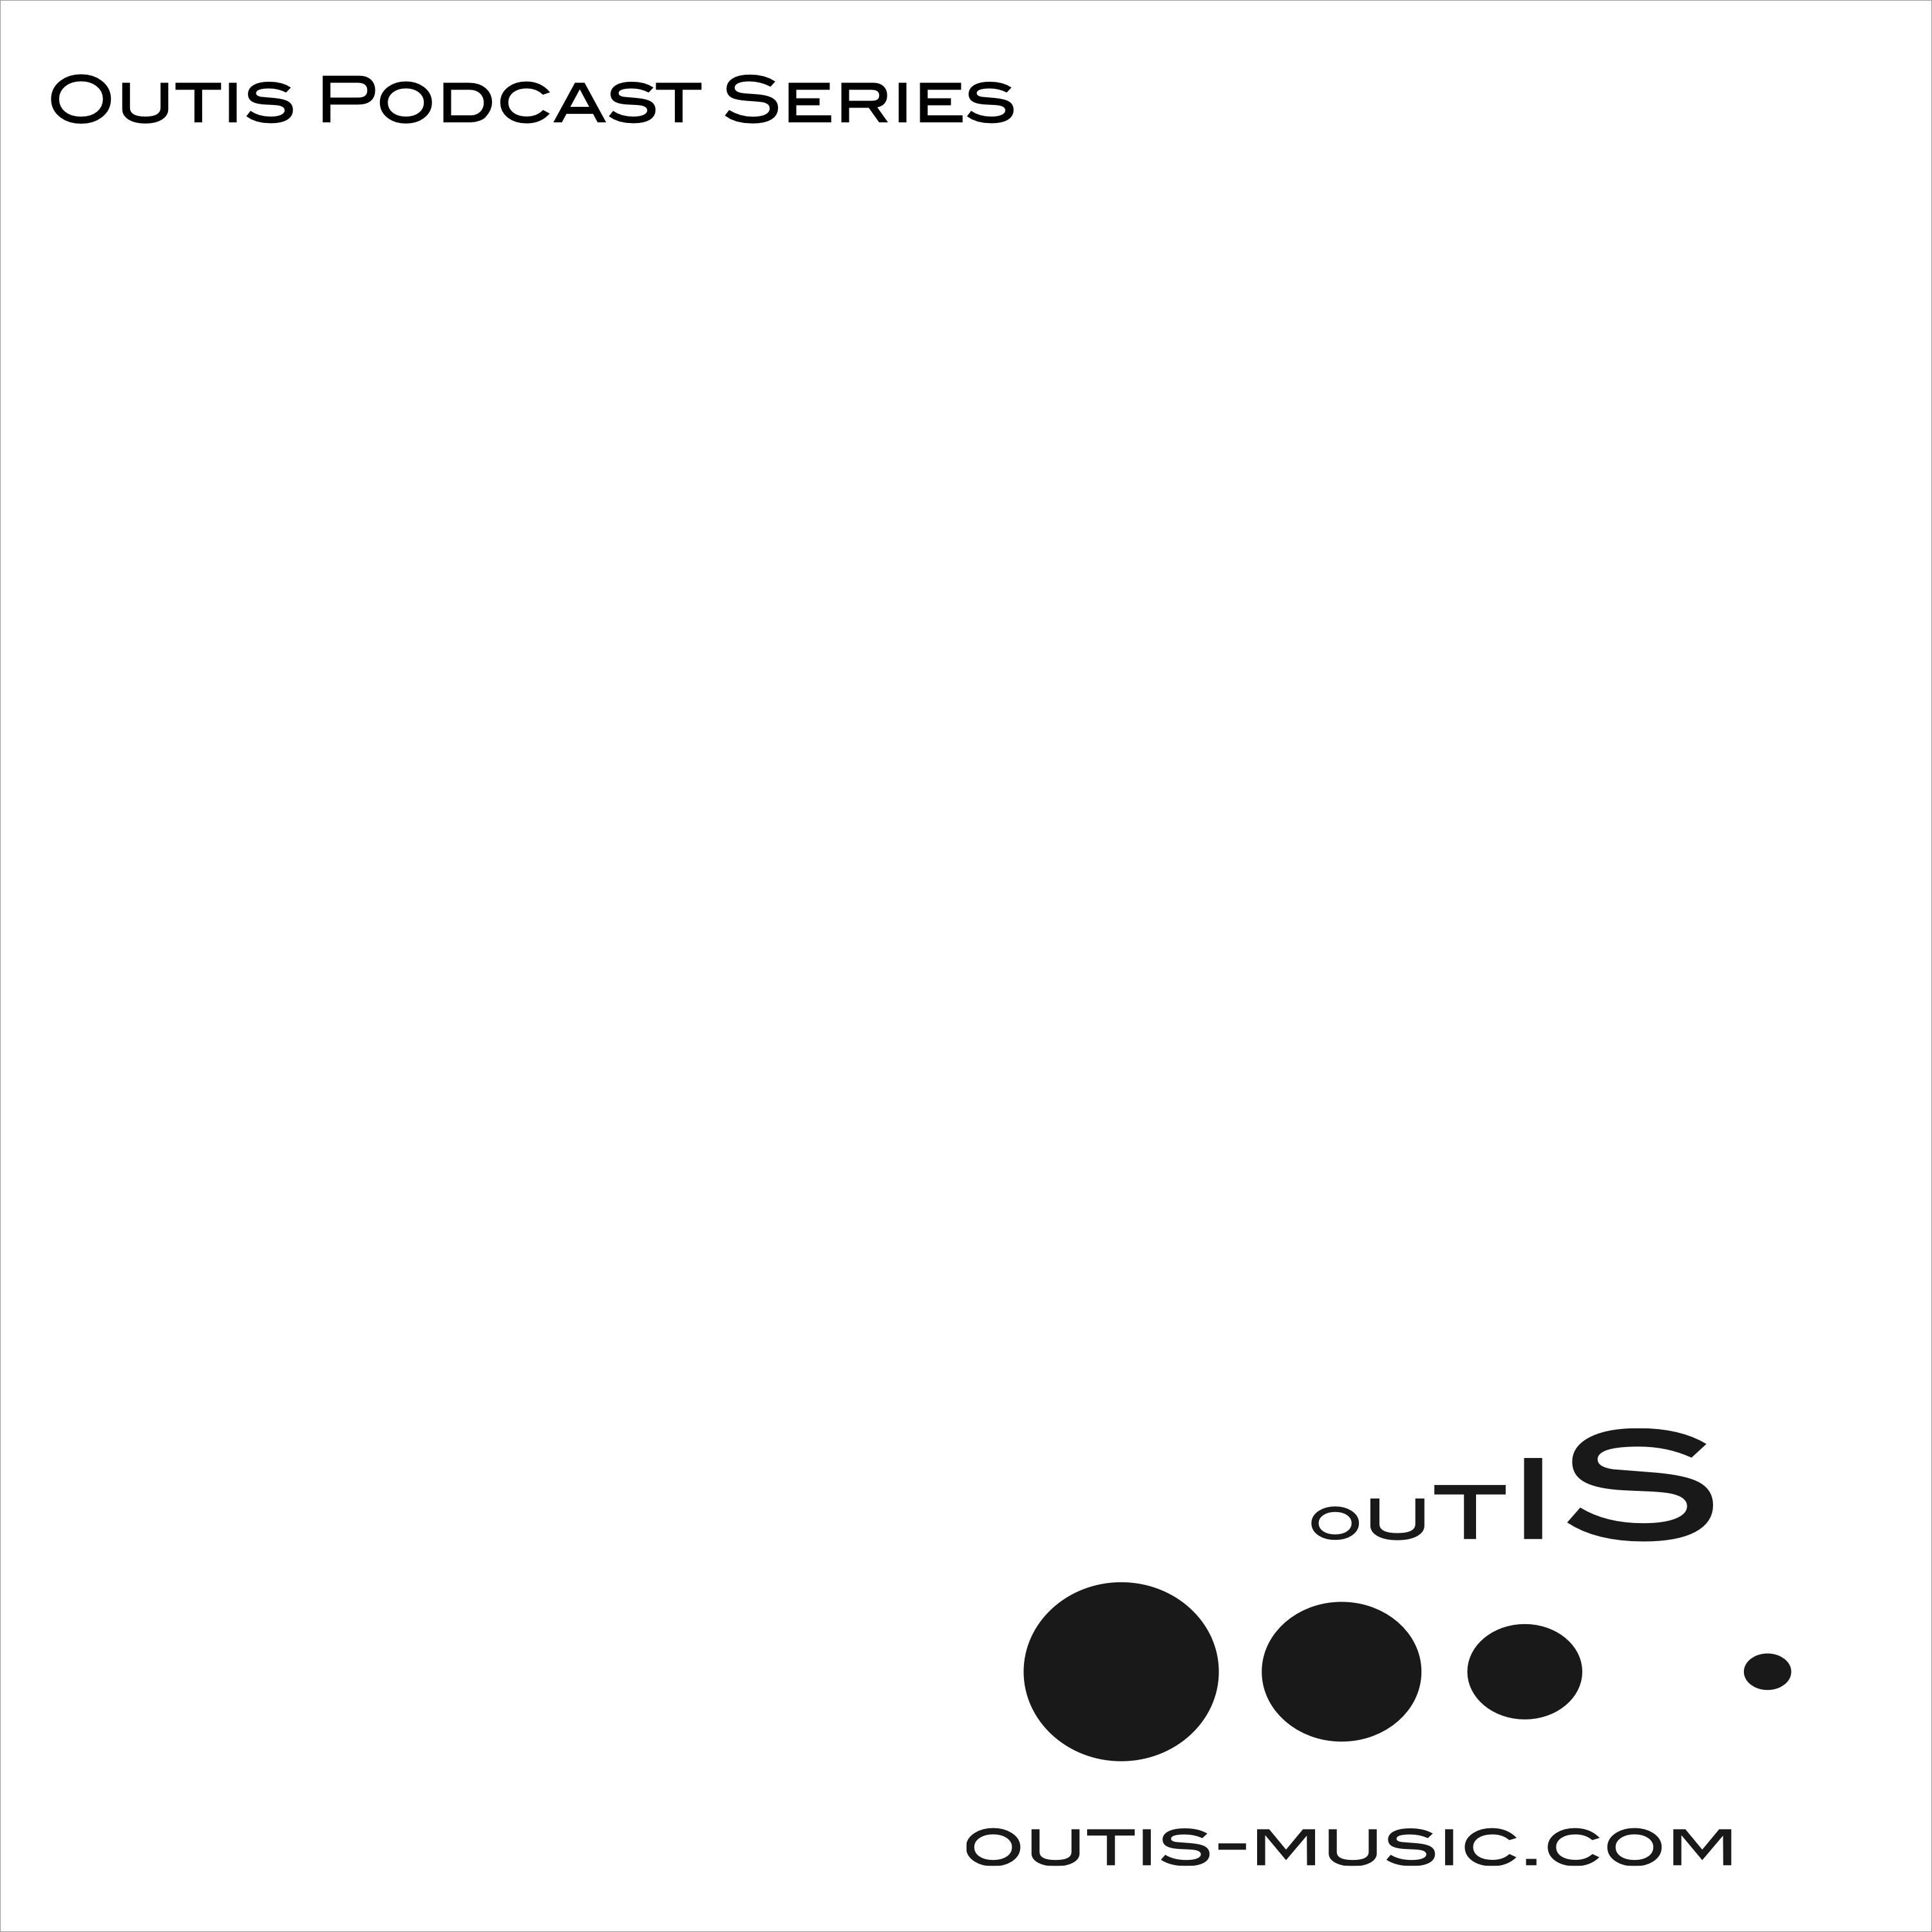 Outis Podcast Series